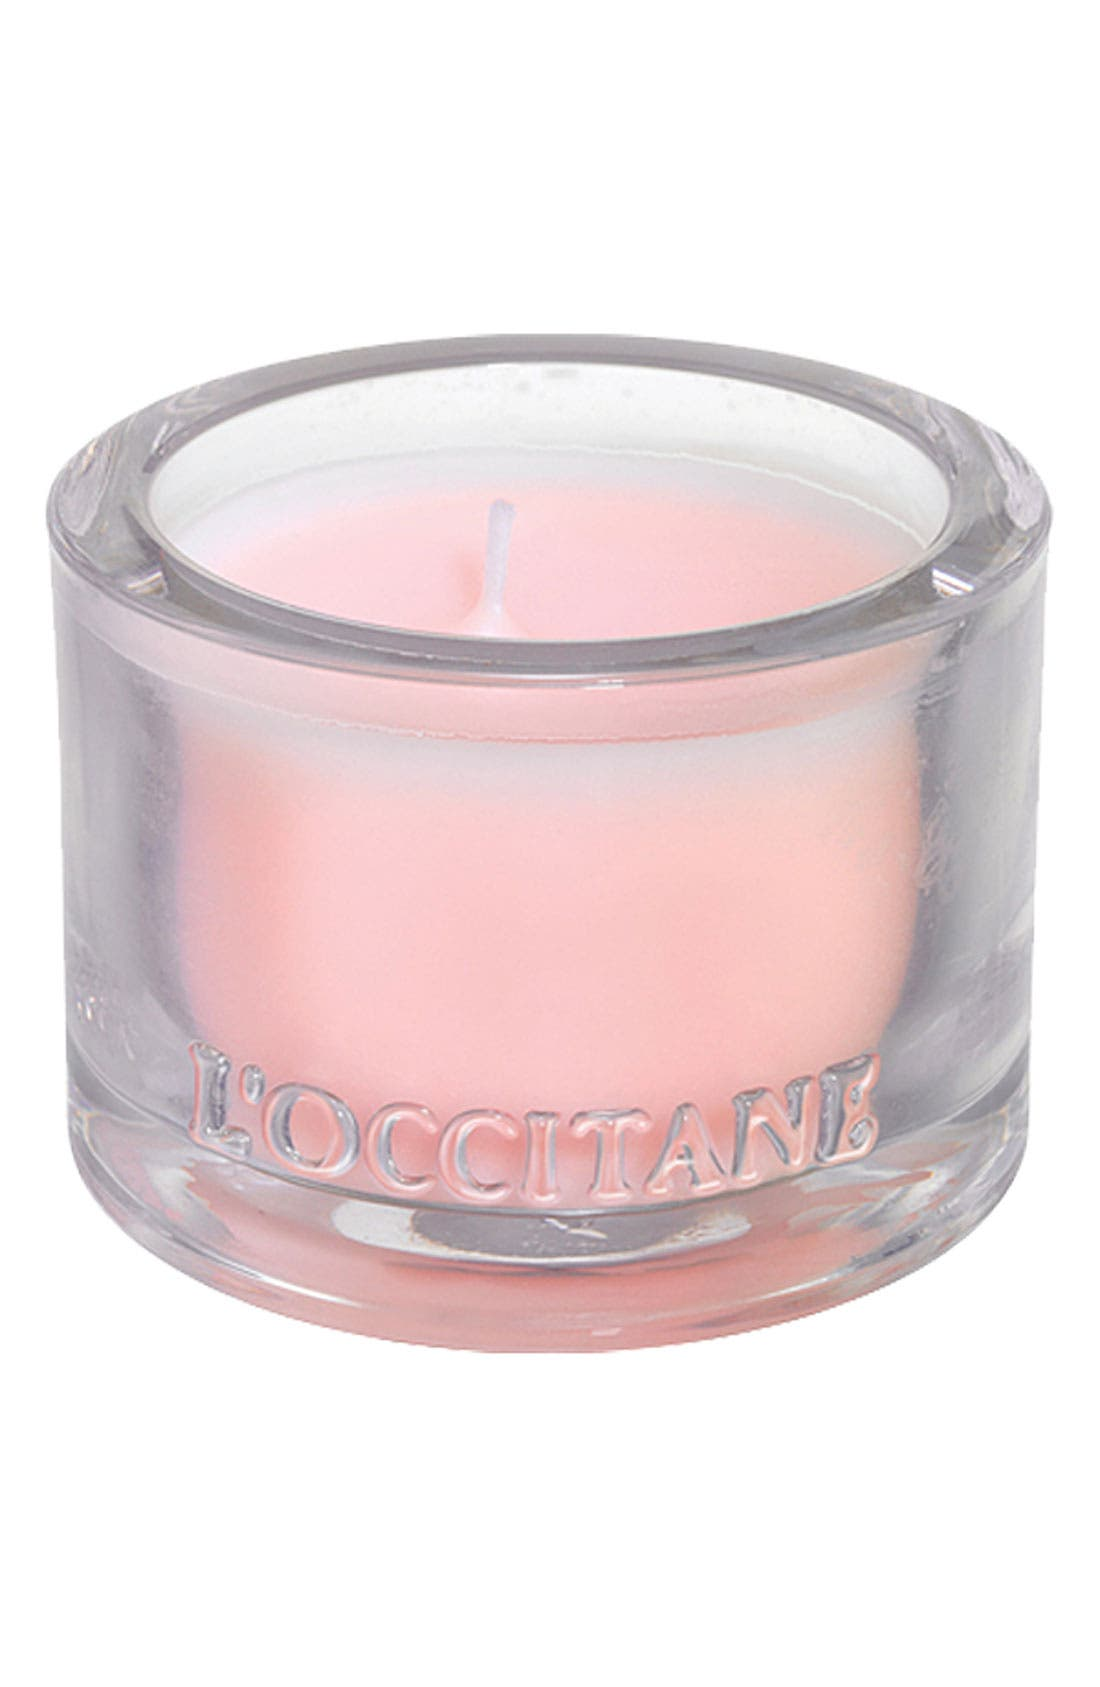 Alternate Image 1 Selected - L'Occitane 'Rose 4 Reines' Scented Candle